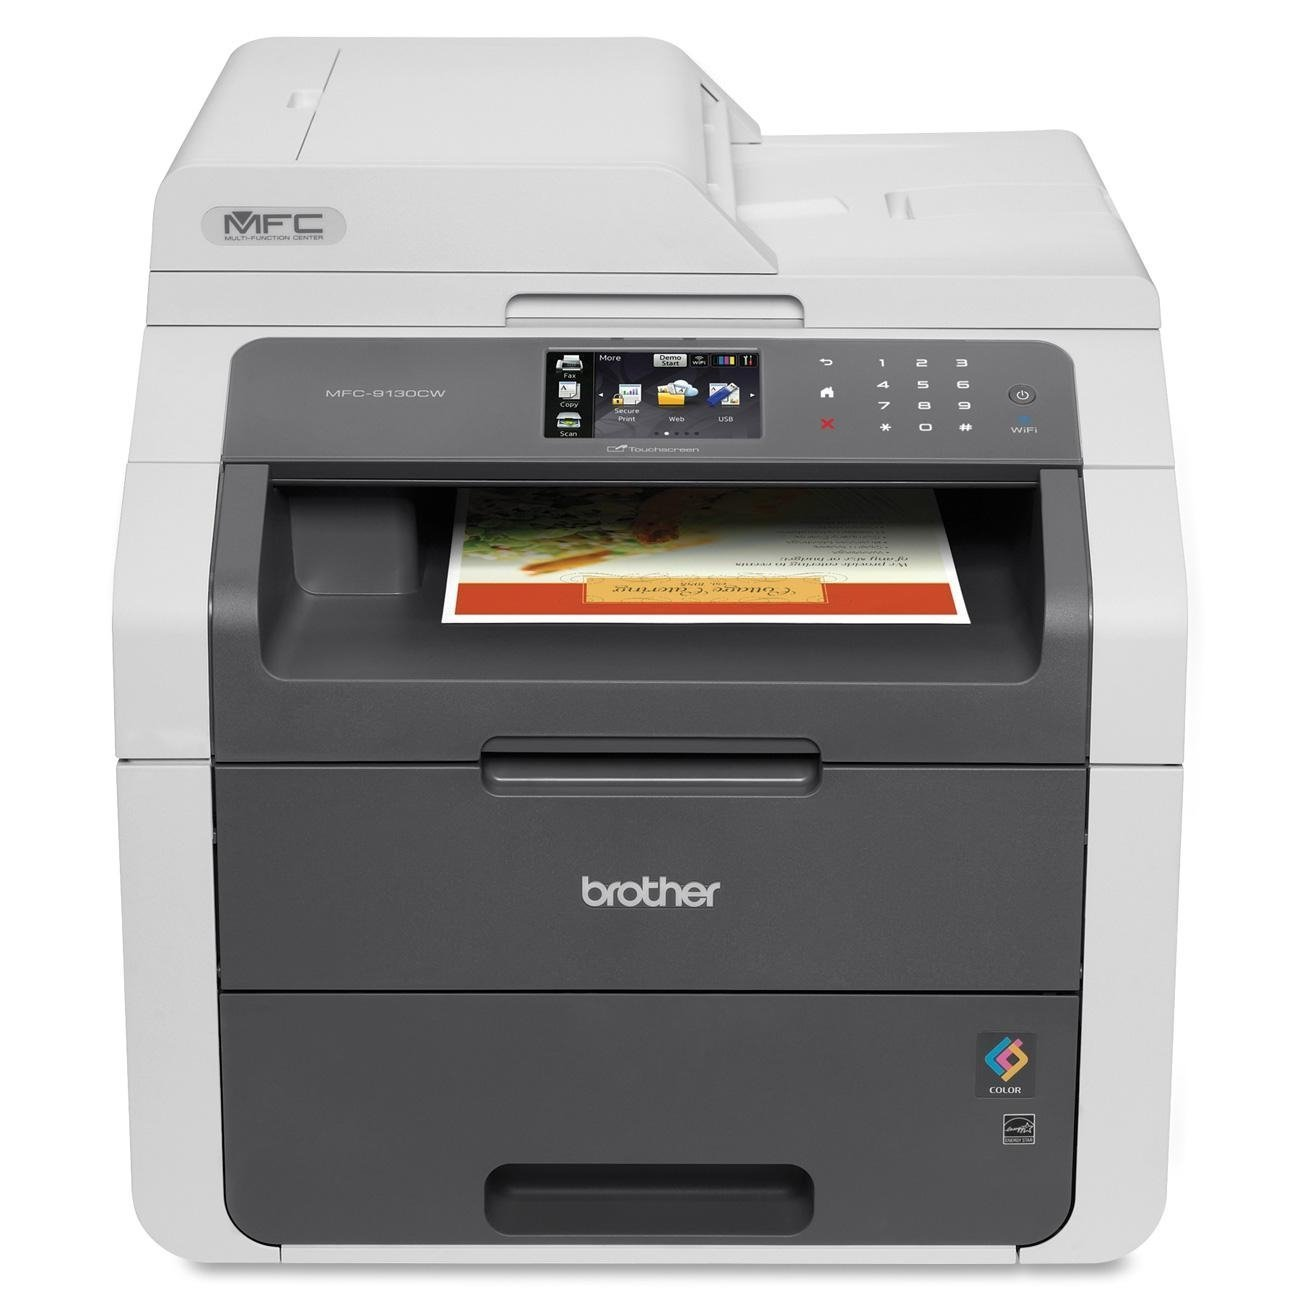 7. Brother MFC9130CW Wirelss Printer for Mac